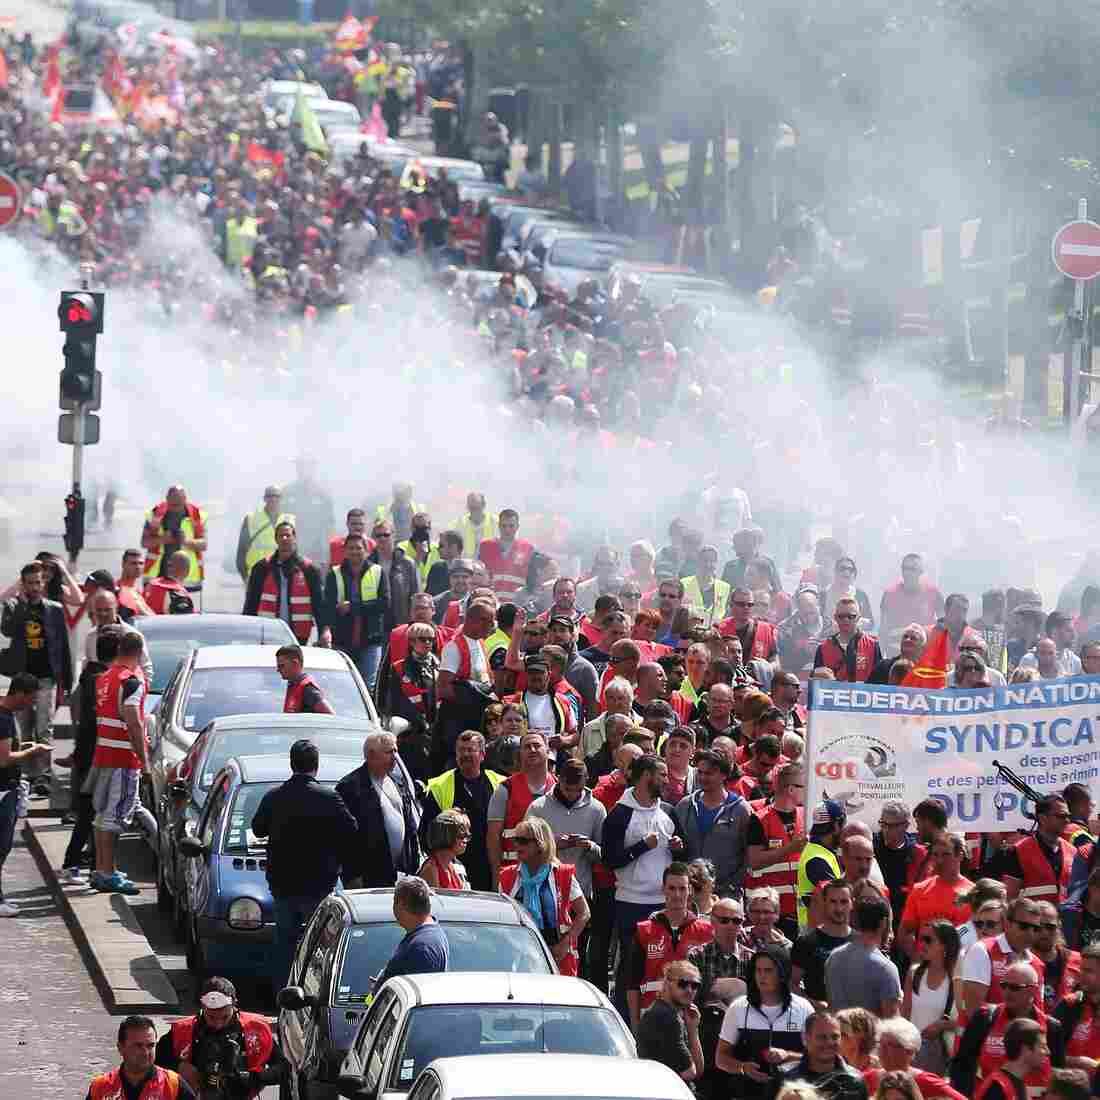 People demonstrate in Le Havre, in northwestern France, on Thursday. A series of protests and strikes have been held over the past few months, to oppose a government plan to change France's labor law.